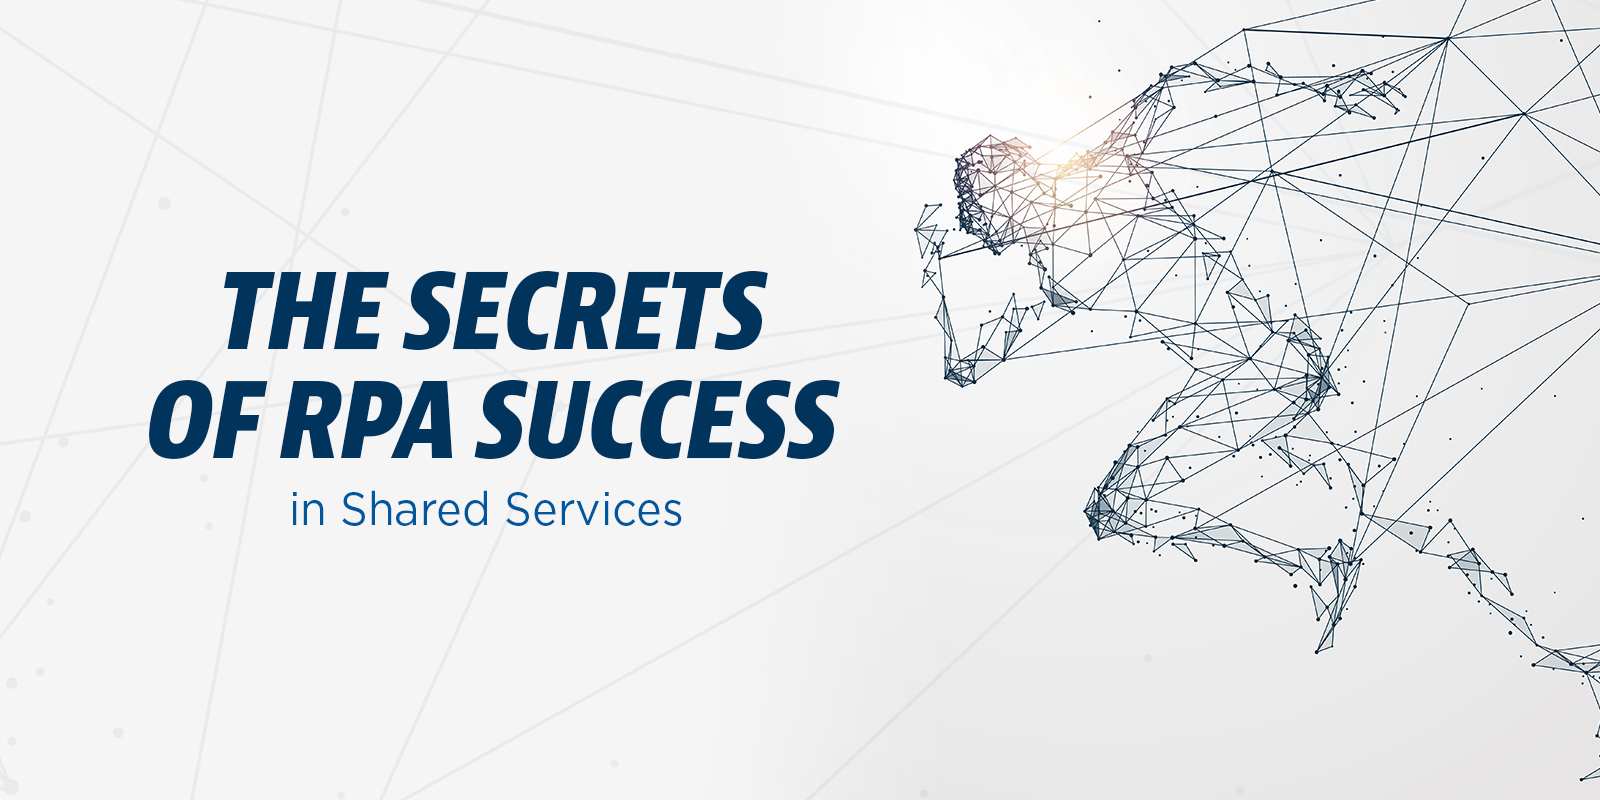 The Secrets of RPA Success in Shared Services